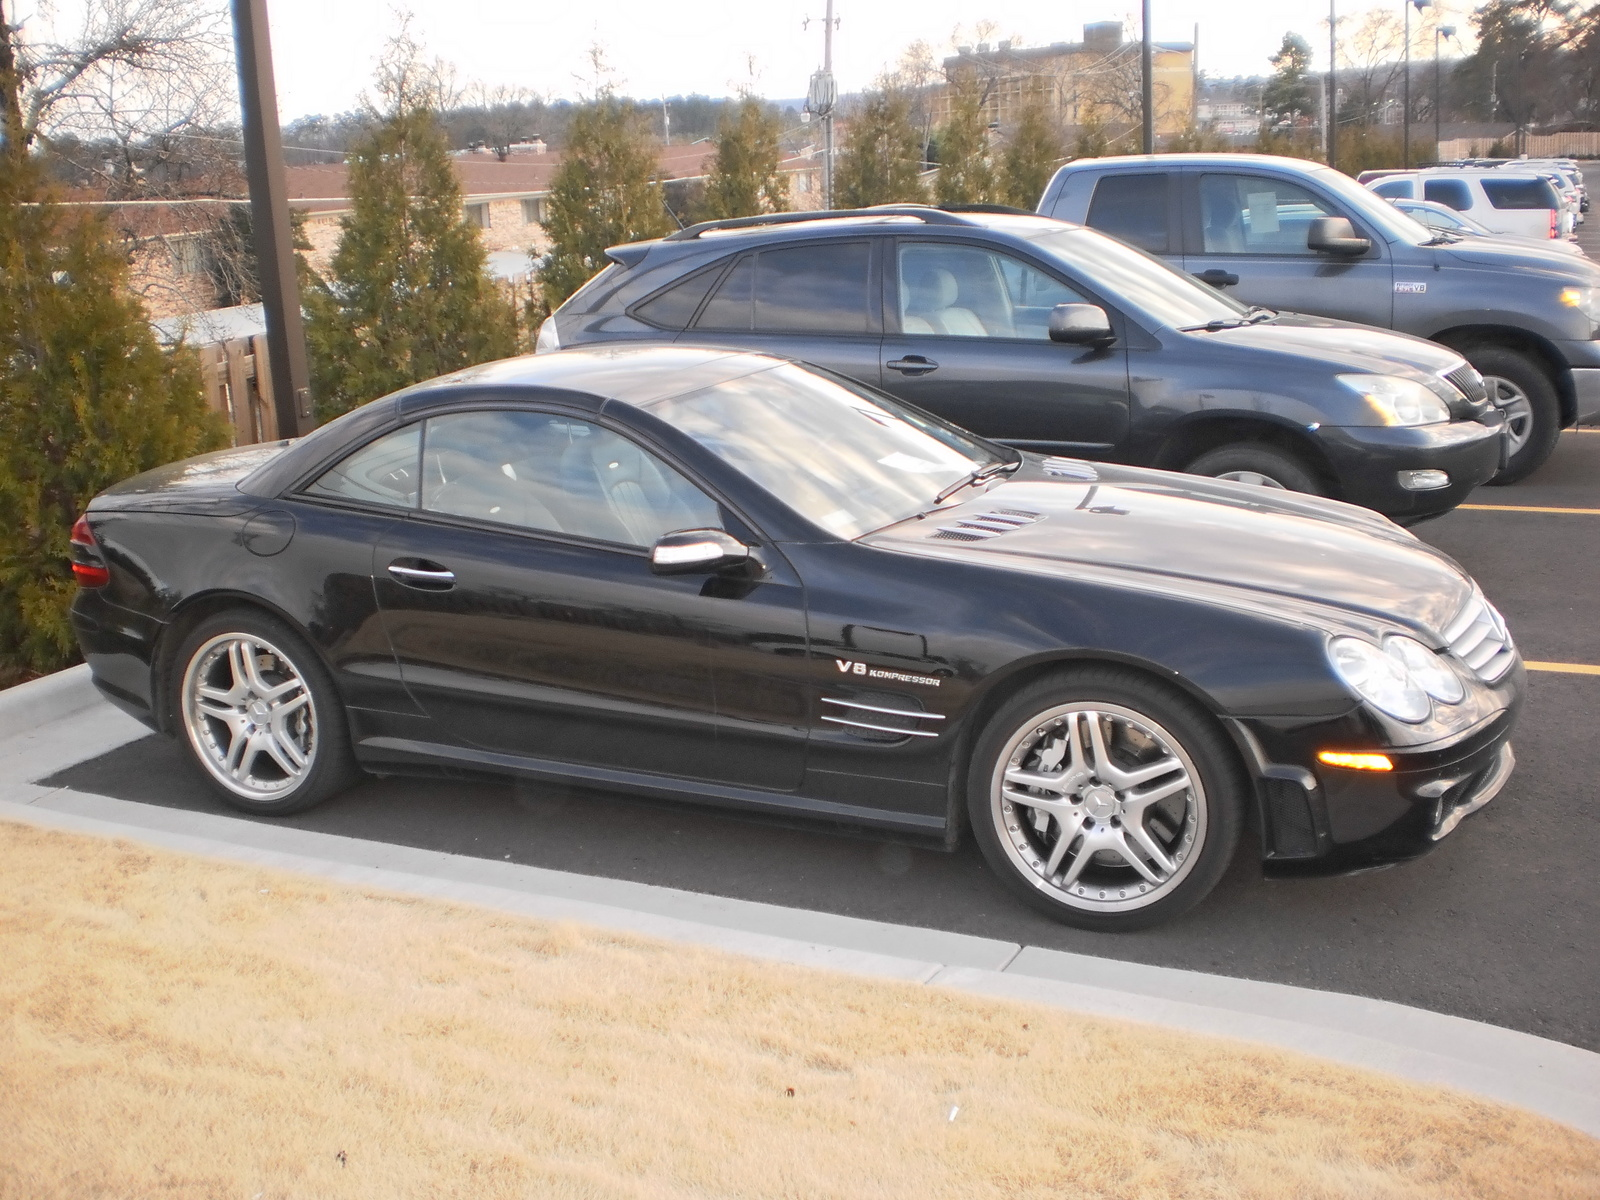 2006 mercedes benz sl class pictures cargurus for 2006 mercedes benz sl55 amg